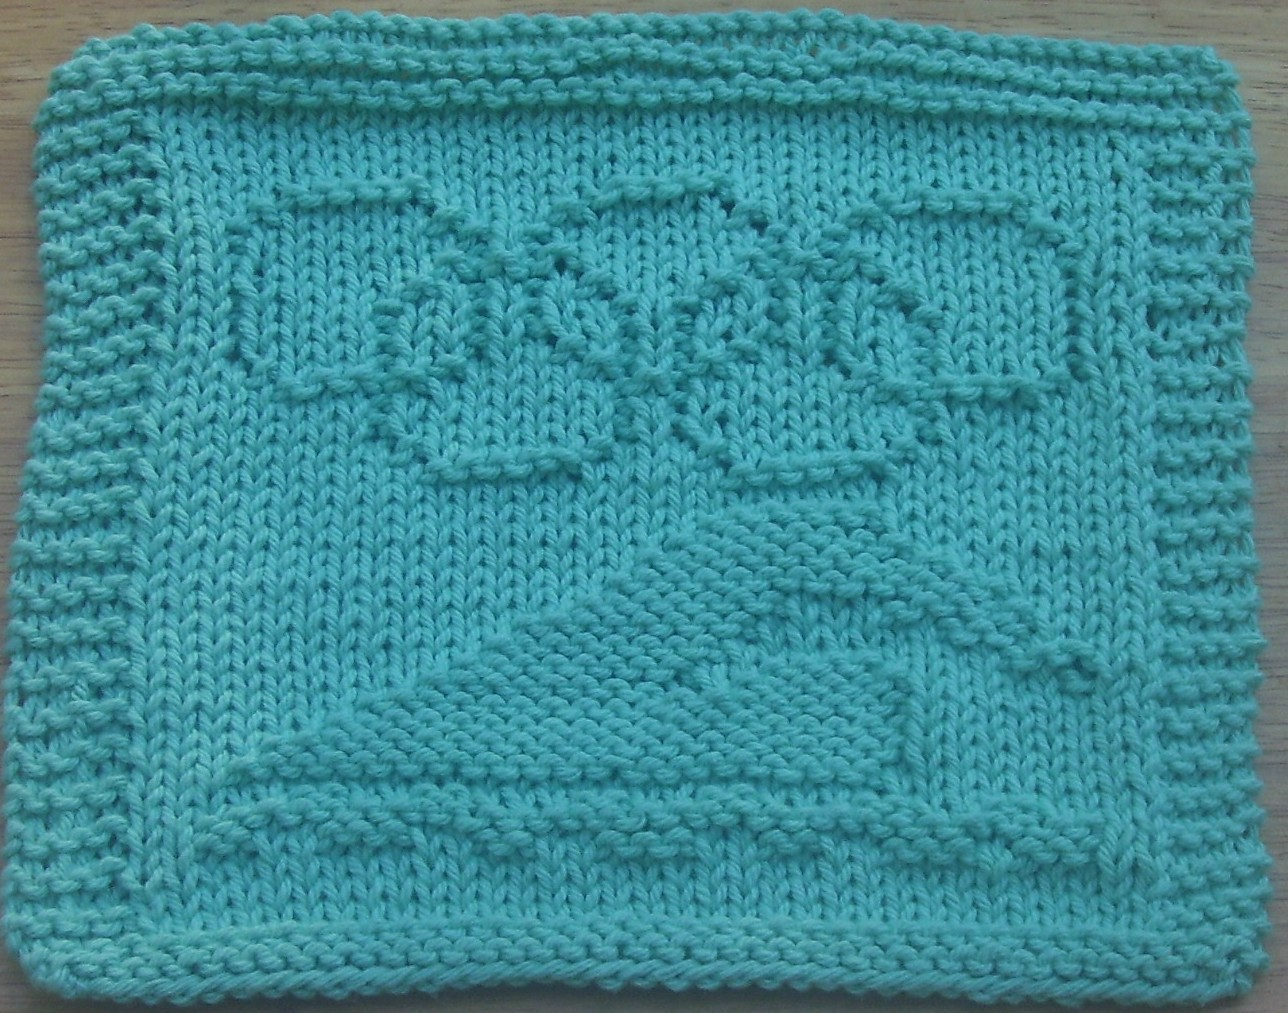 http://digknittydesigns.blogspot.com.au/2008/08/olympic-swimmer-knit-dishcloth-pattern.html